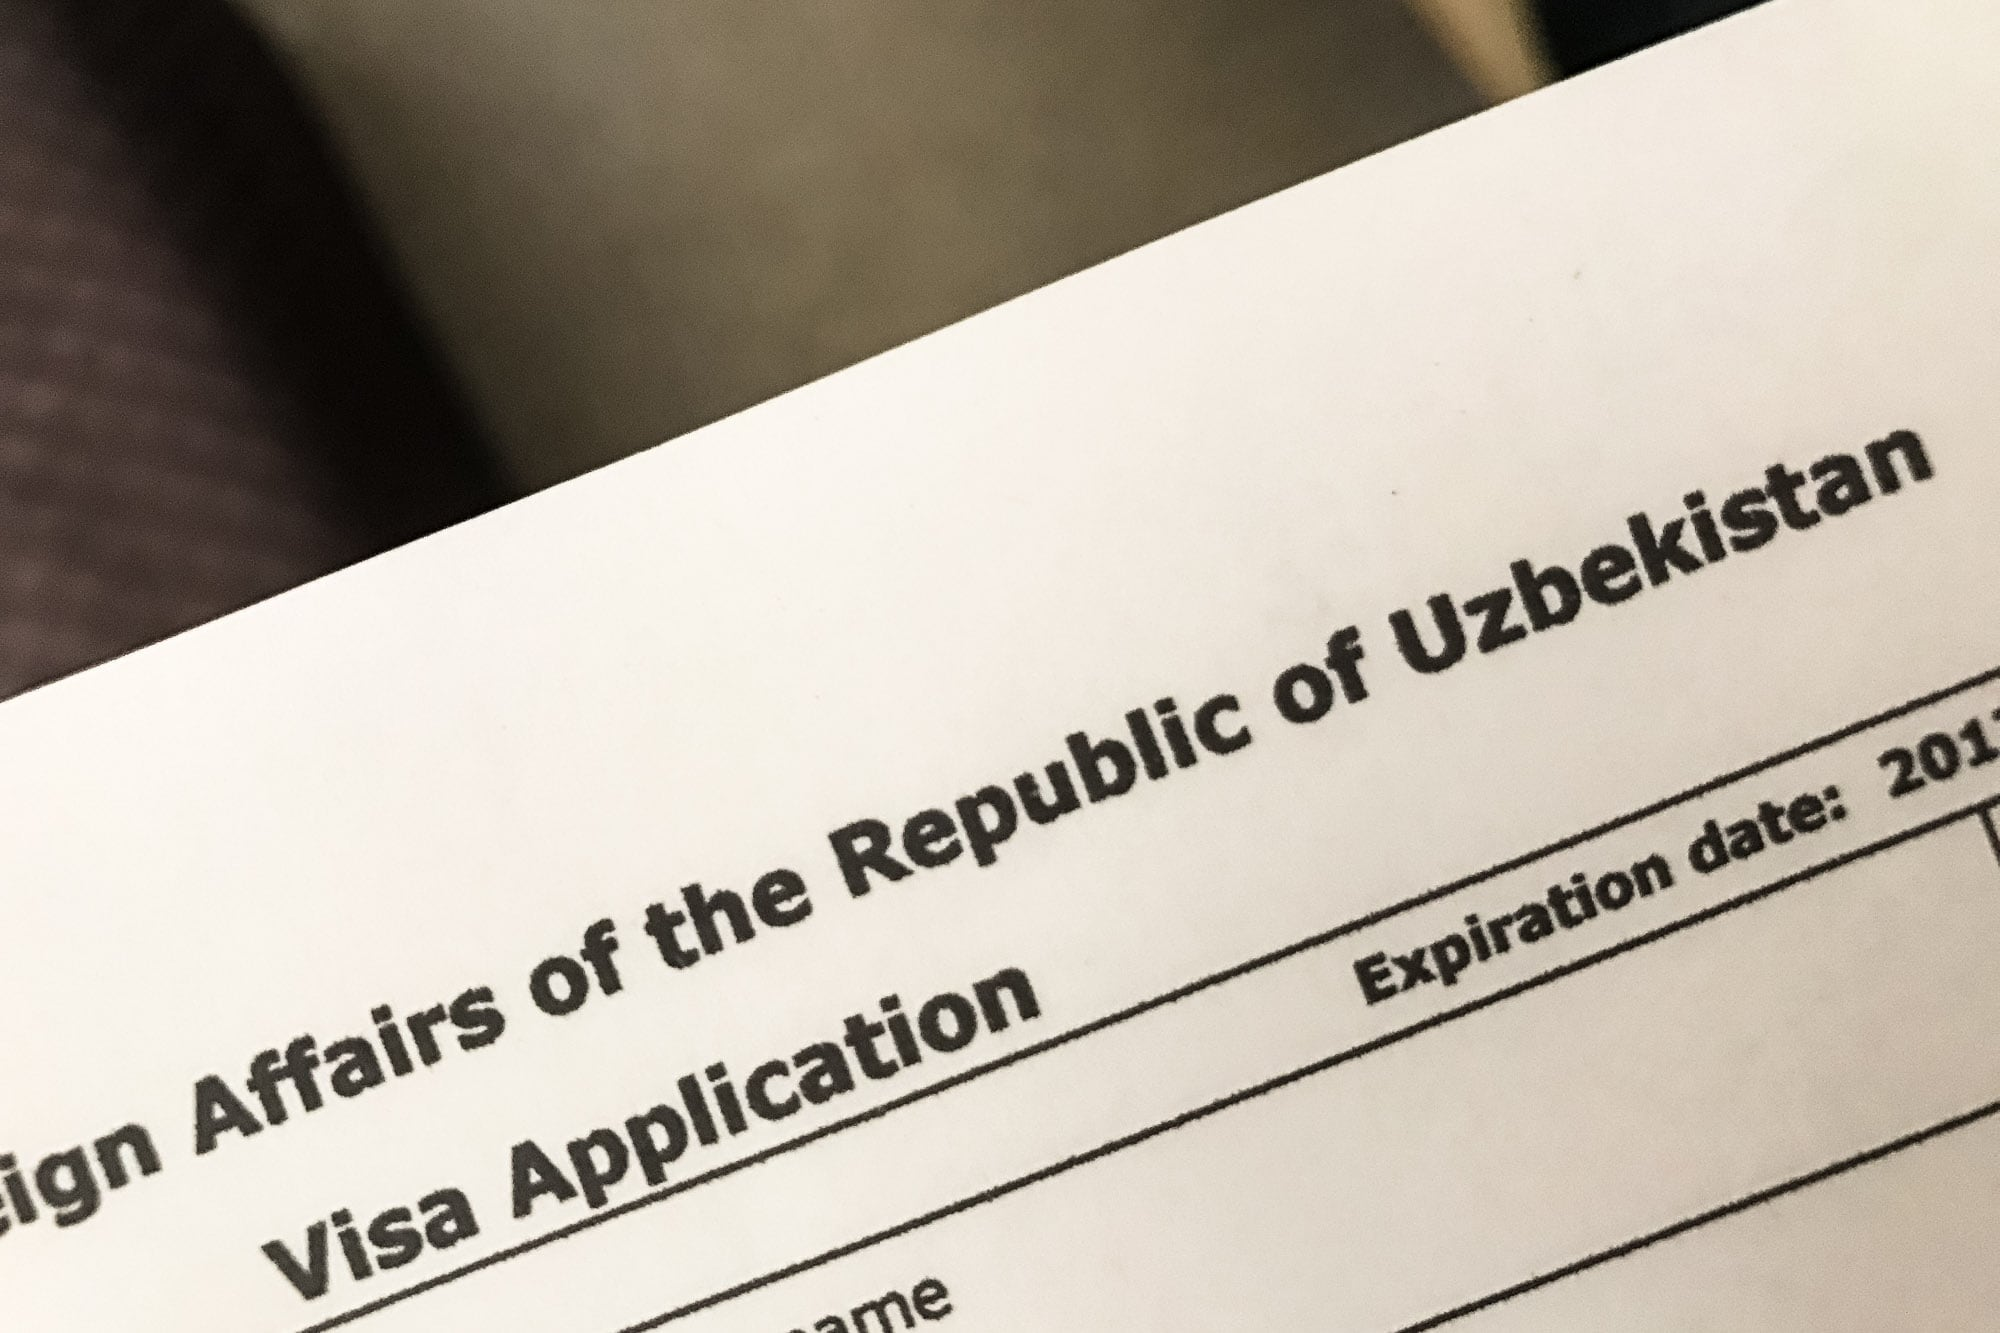 uzbek visa application